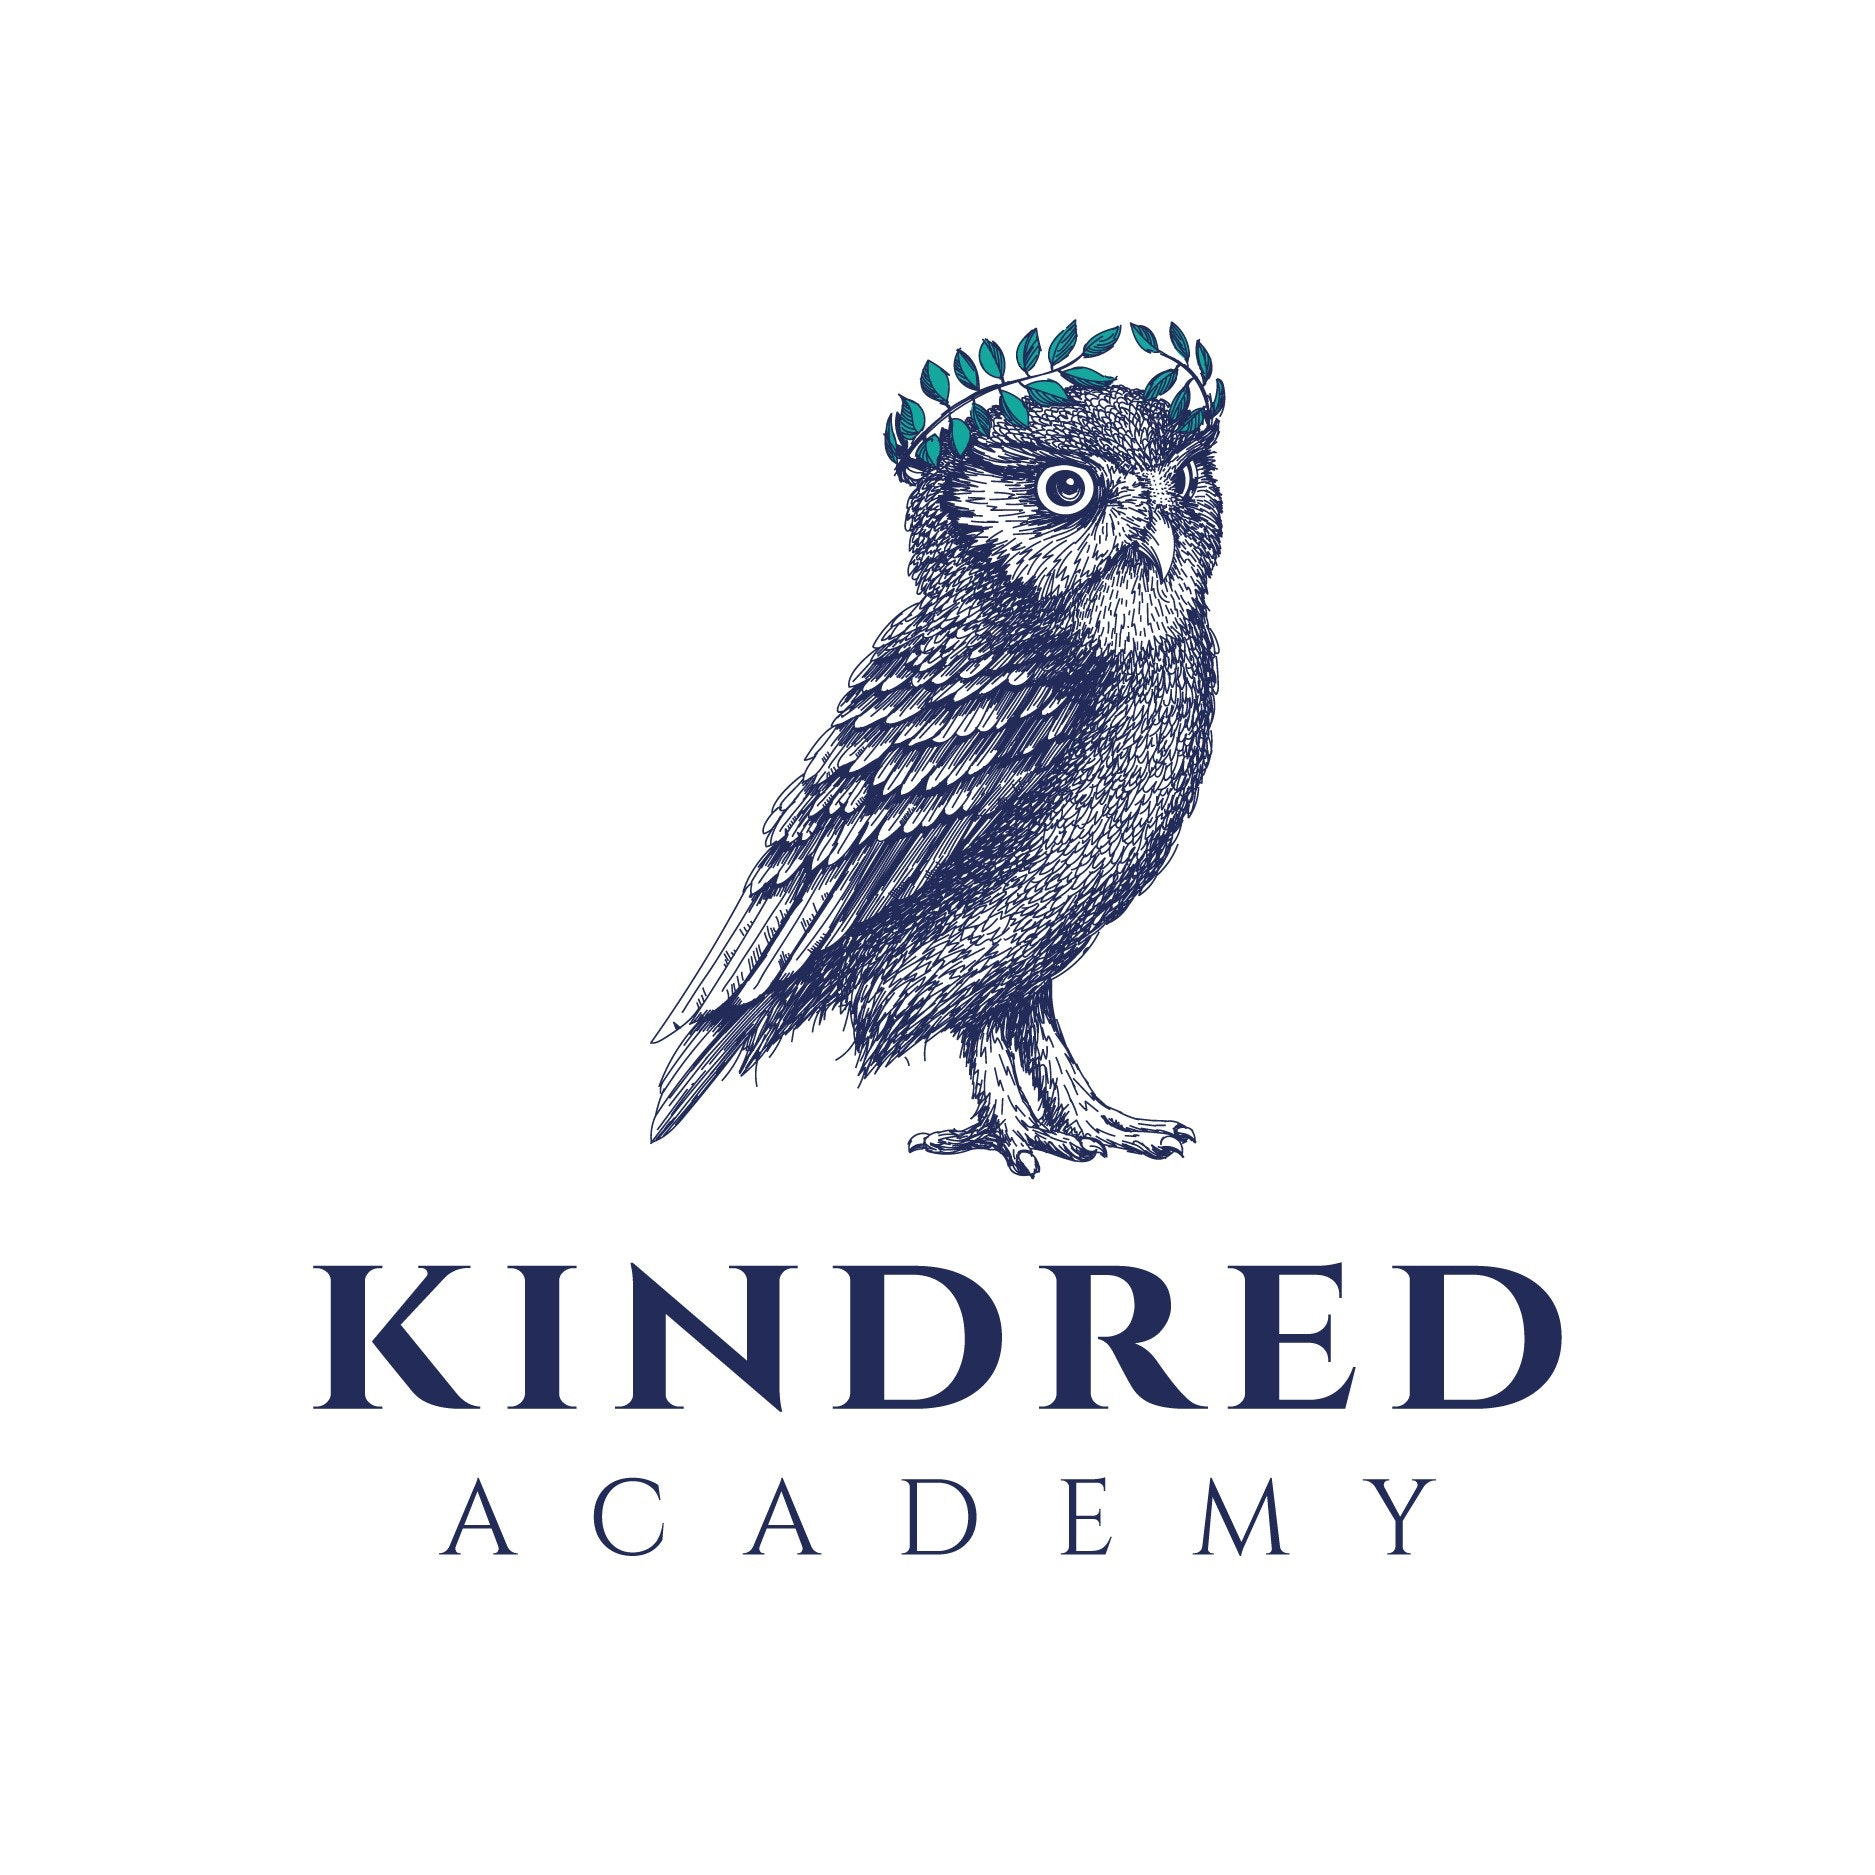 Kindred academy owl logo